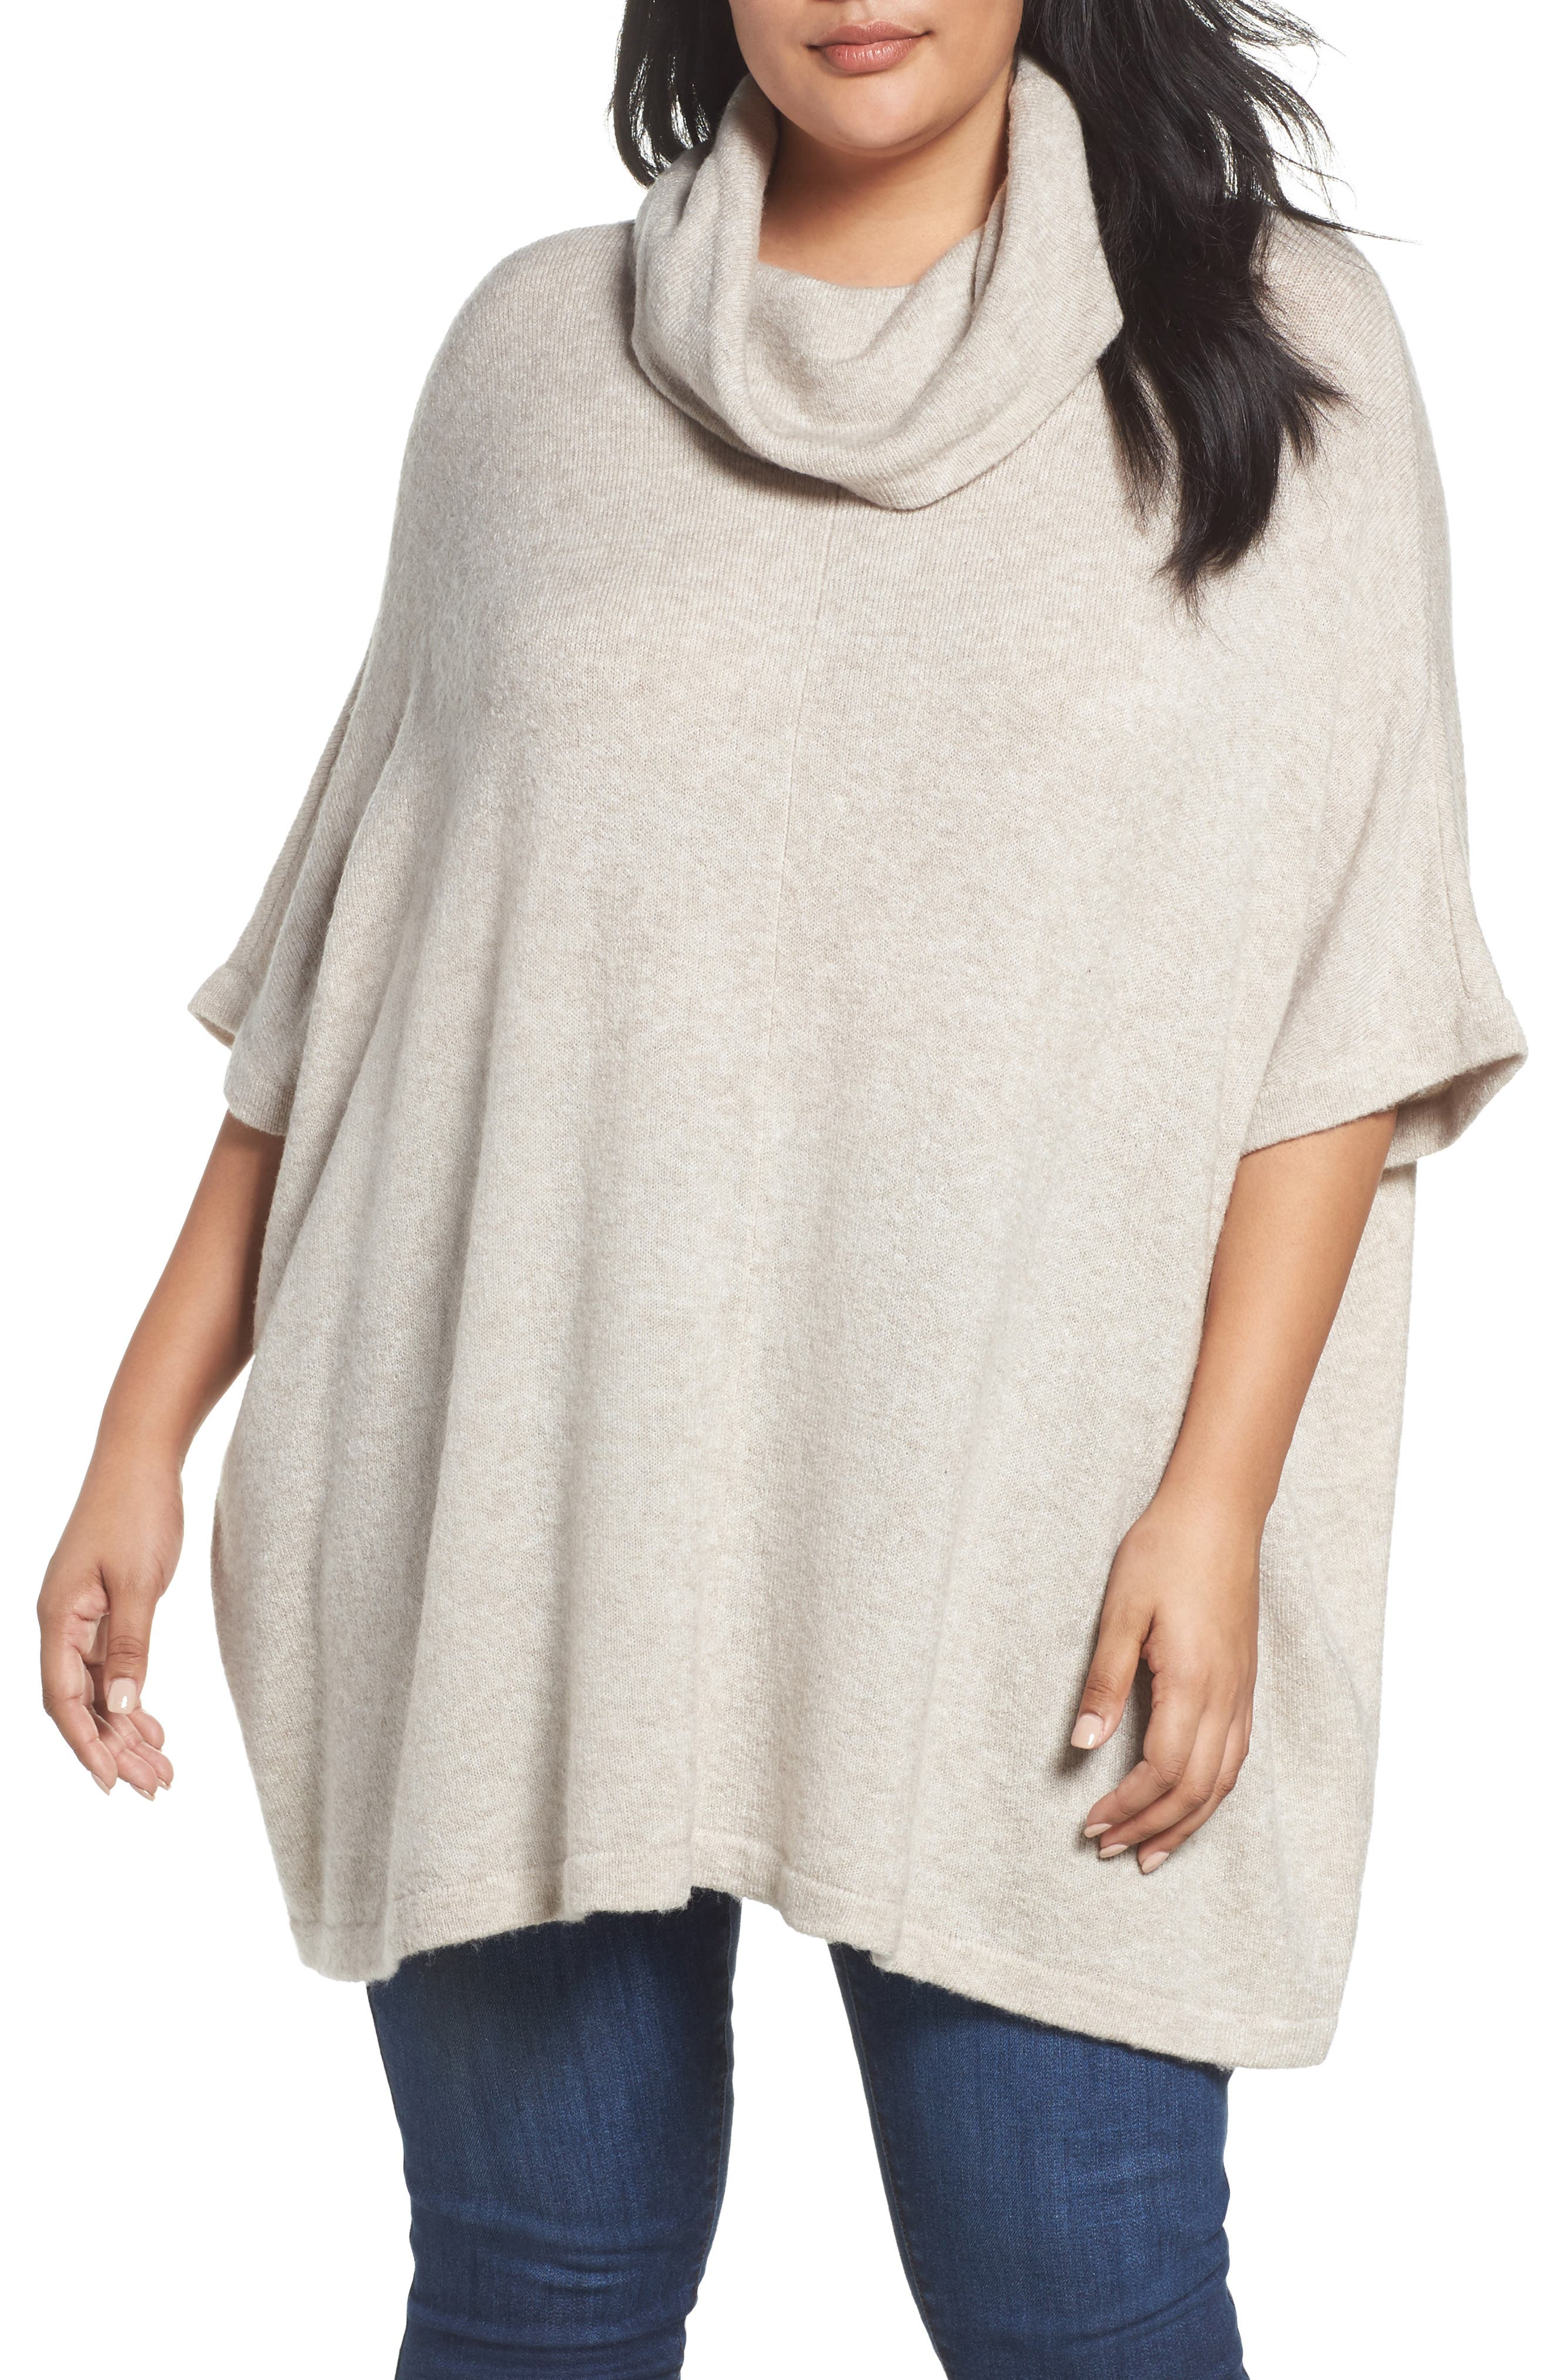 Alternate Image 1 Selected - Caslon® Turtleneck Poncho Sweater (Plus Size)